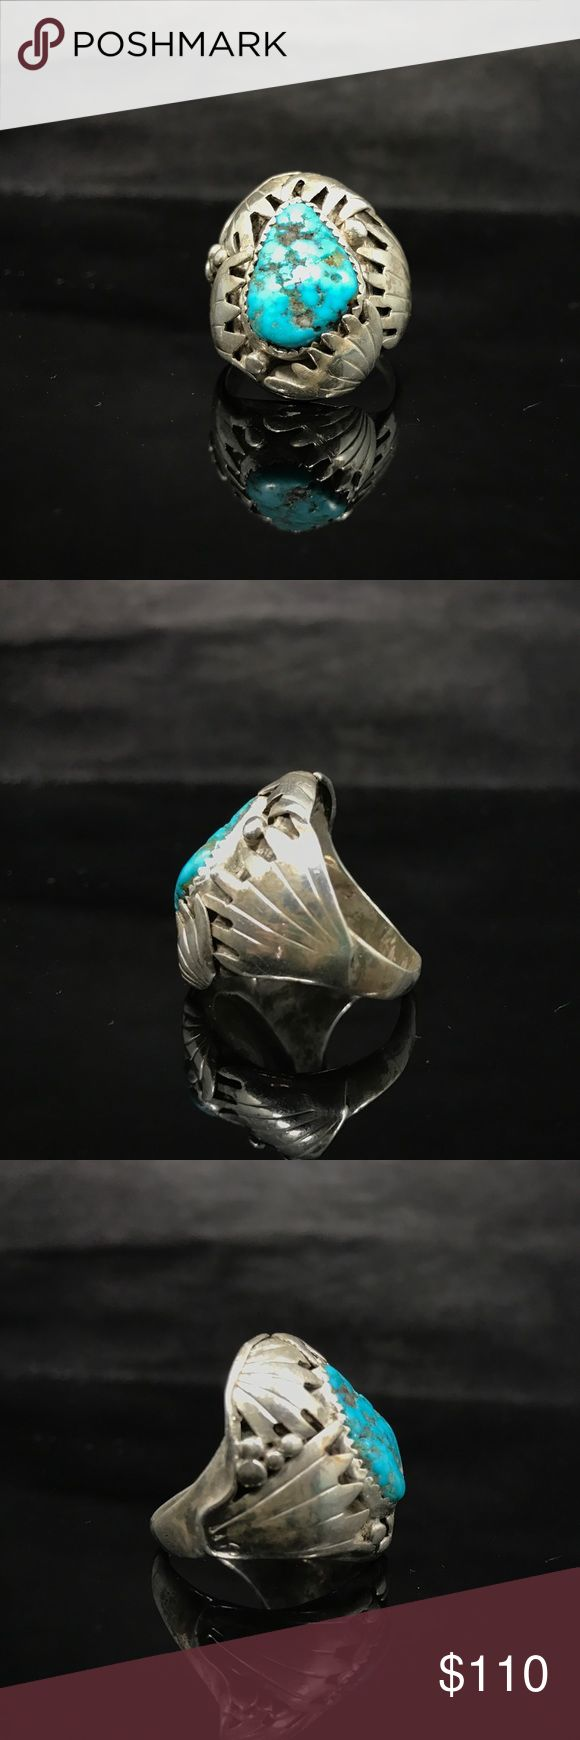 Large turquoise ring Large and heavy unsigned ring. 925 Sterling silver and gorgeous turquoise with unusual design! The band is slightly bent, but does not affect wear! BEAUTIFUL! Native American Jewelry Rings